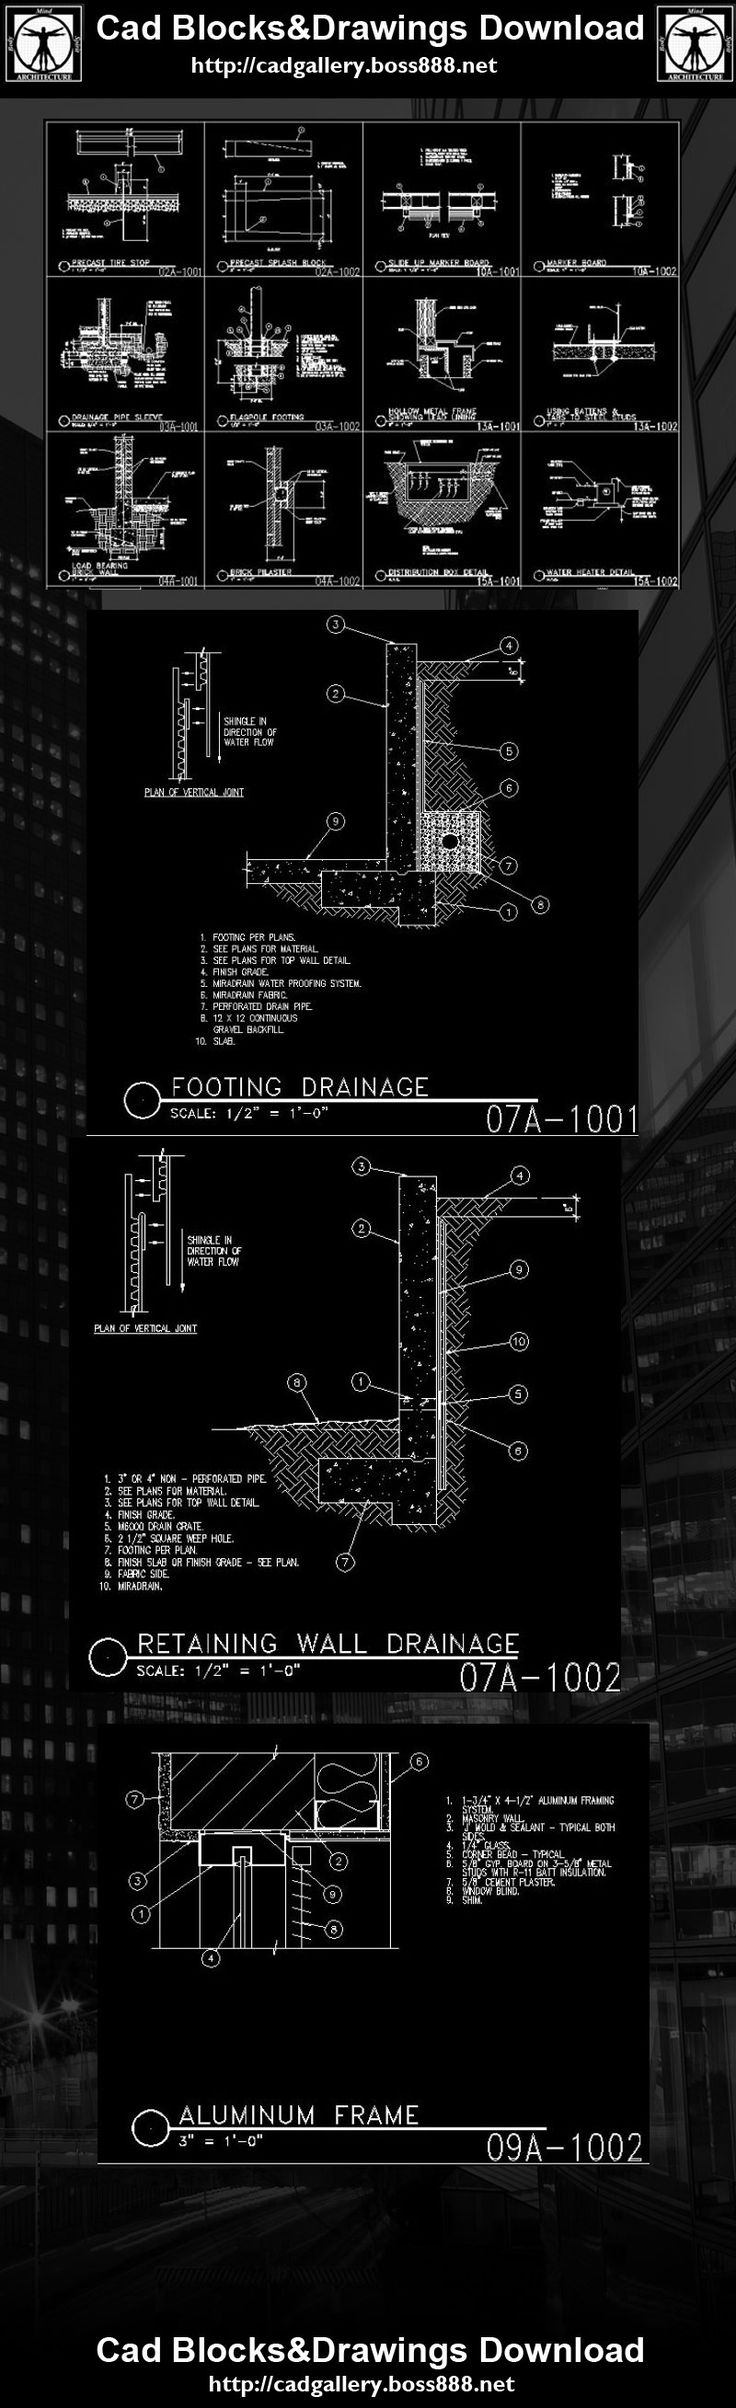 11 Best Autocad Images On Pinterest Cad Blocks Cad Drawing And